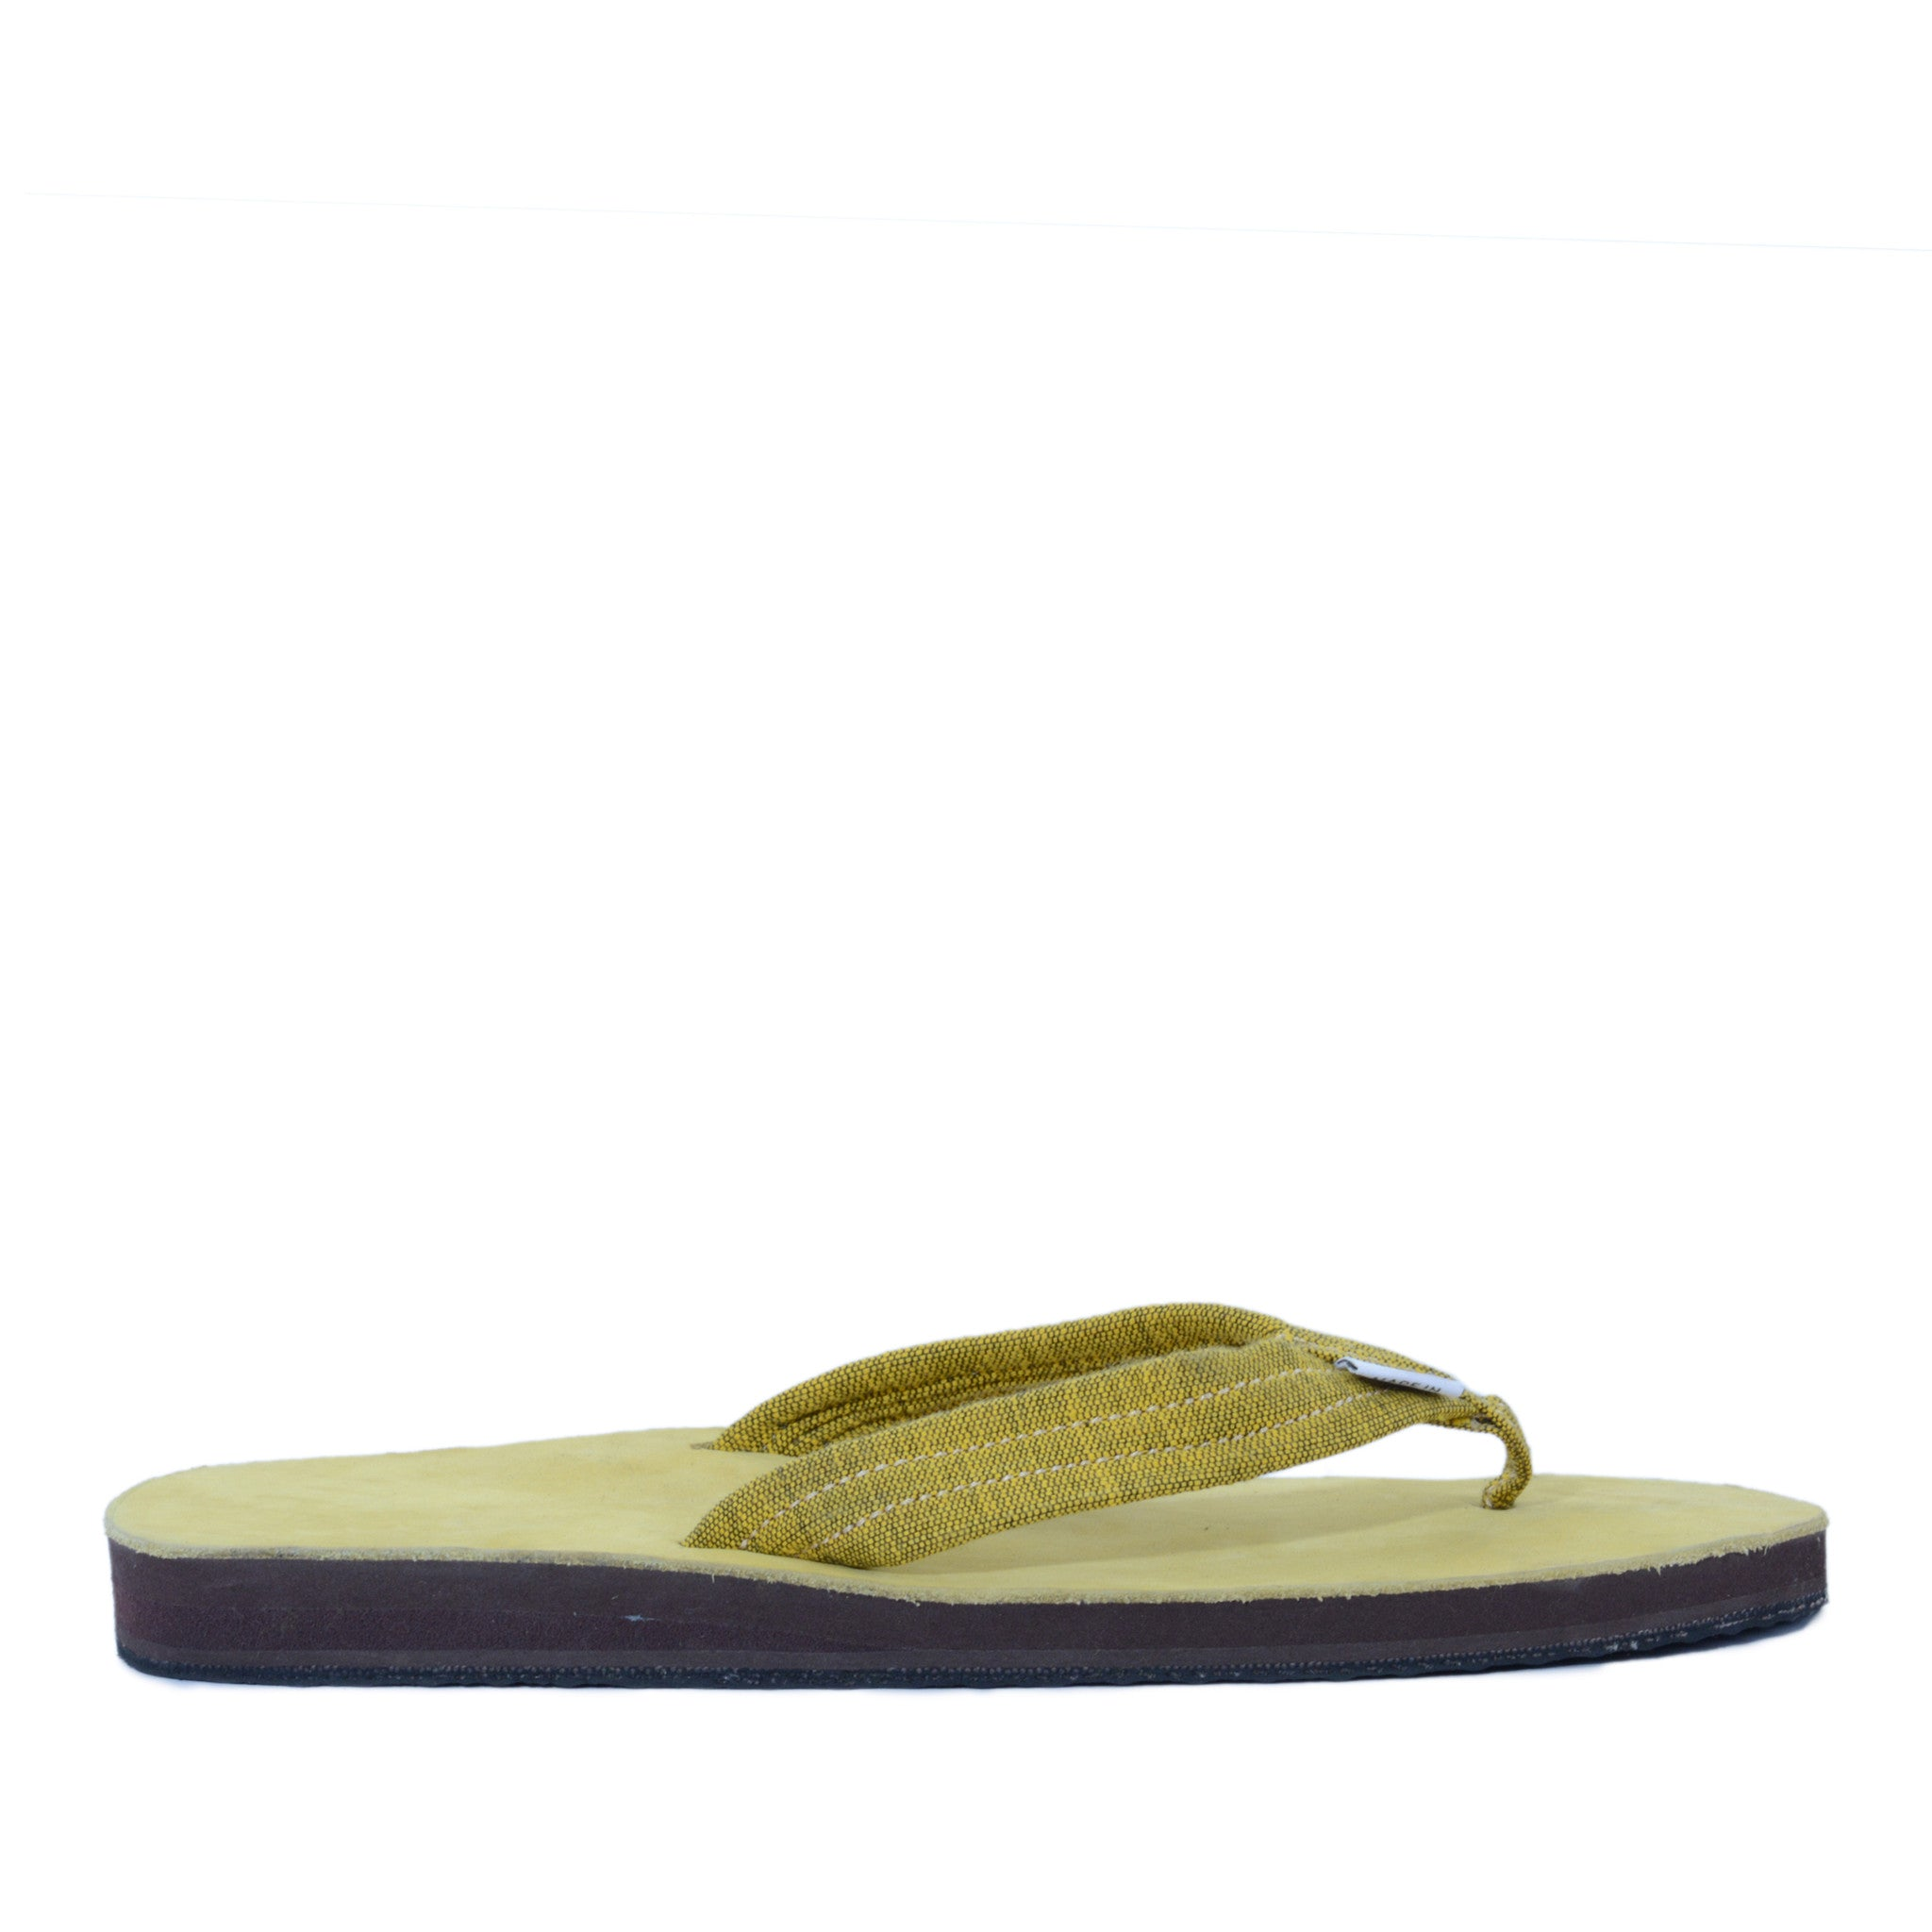 solerebels mustard yellow nuDEAL mSh 2 Sandals